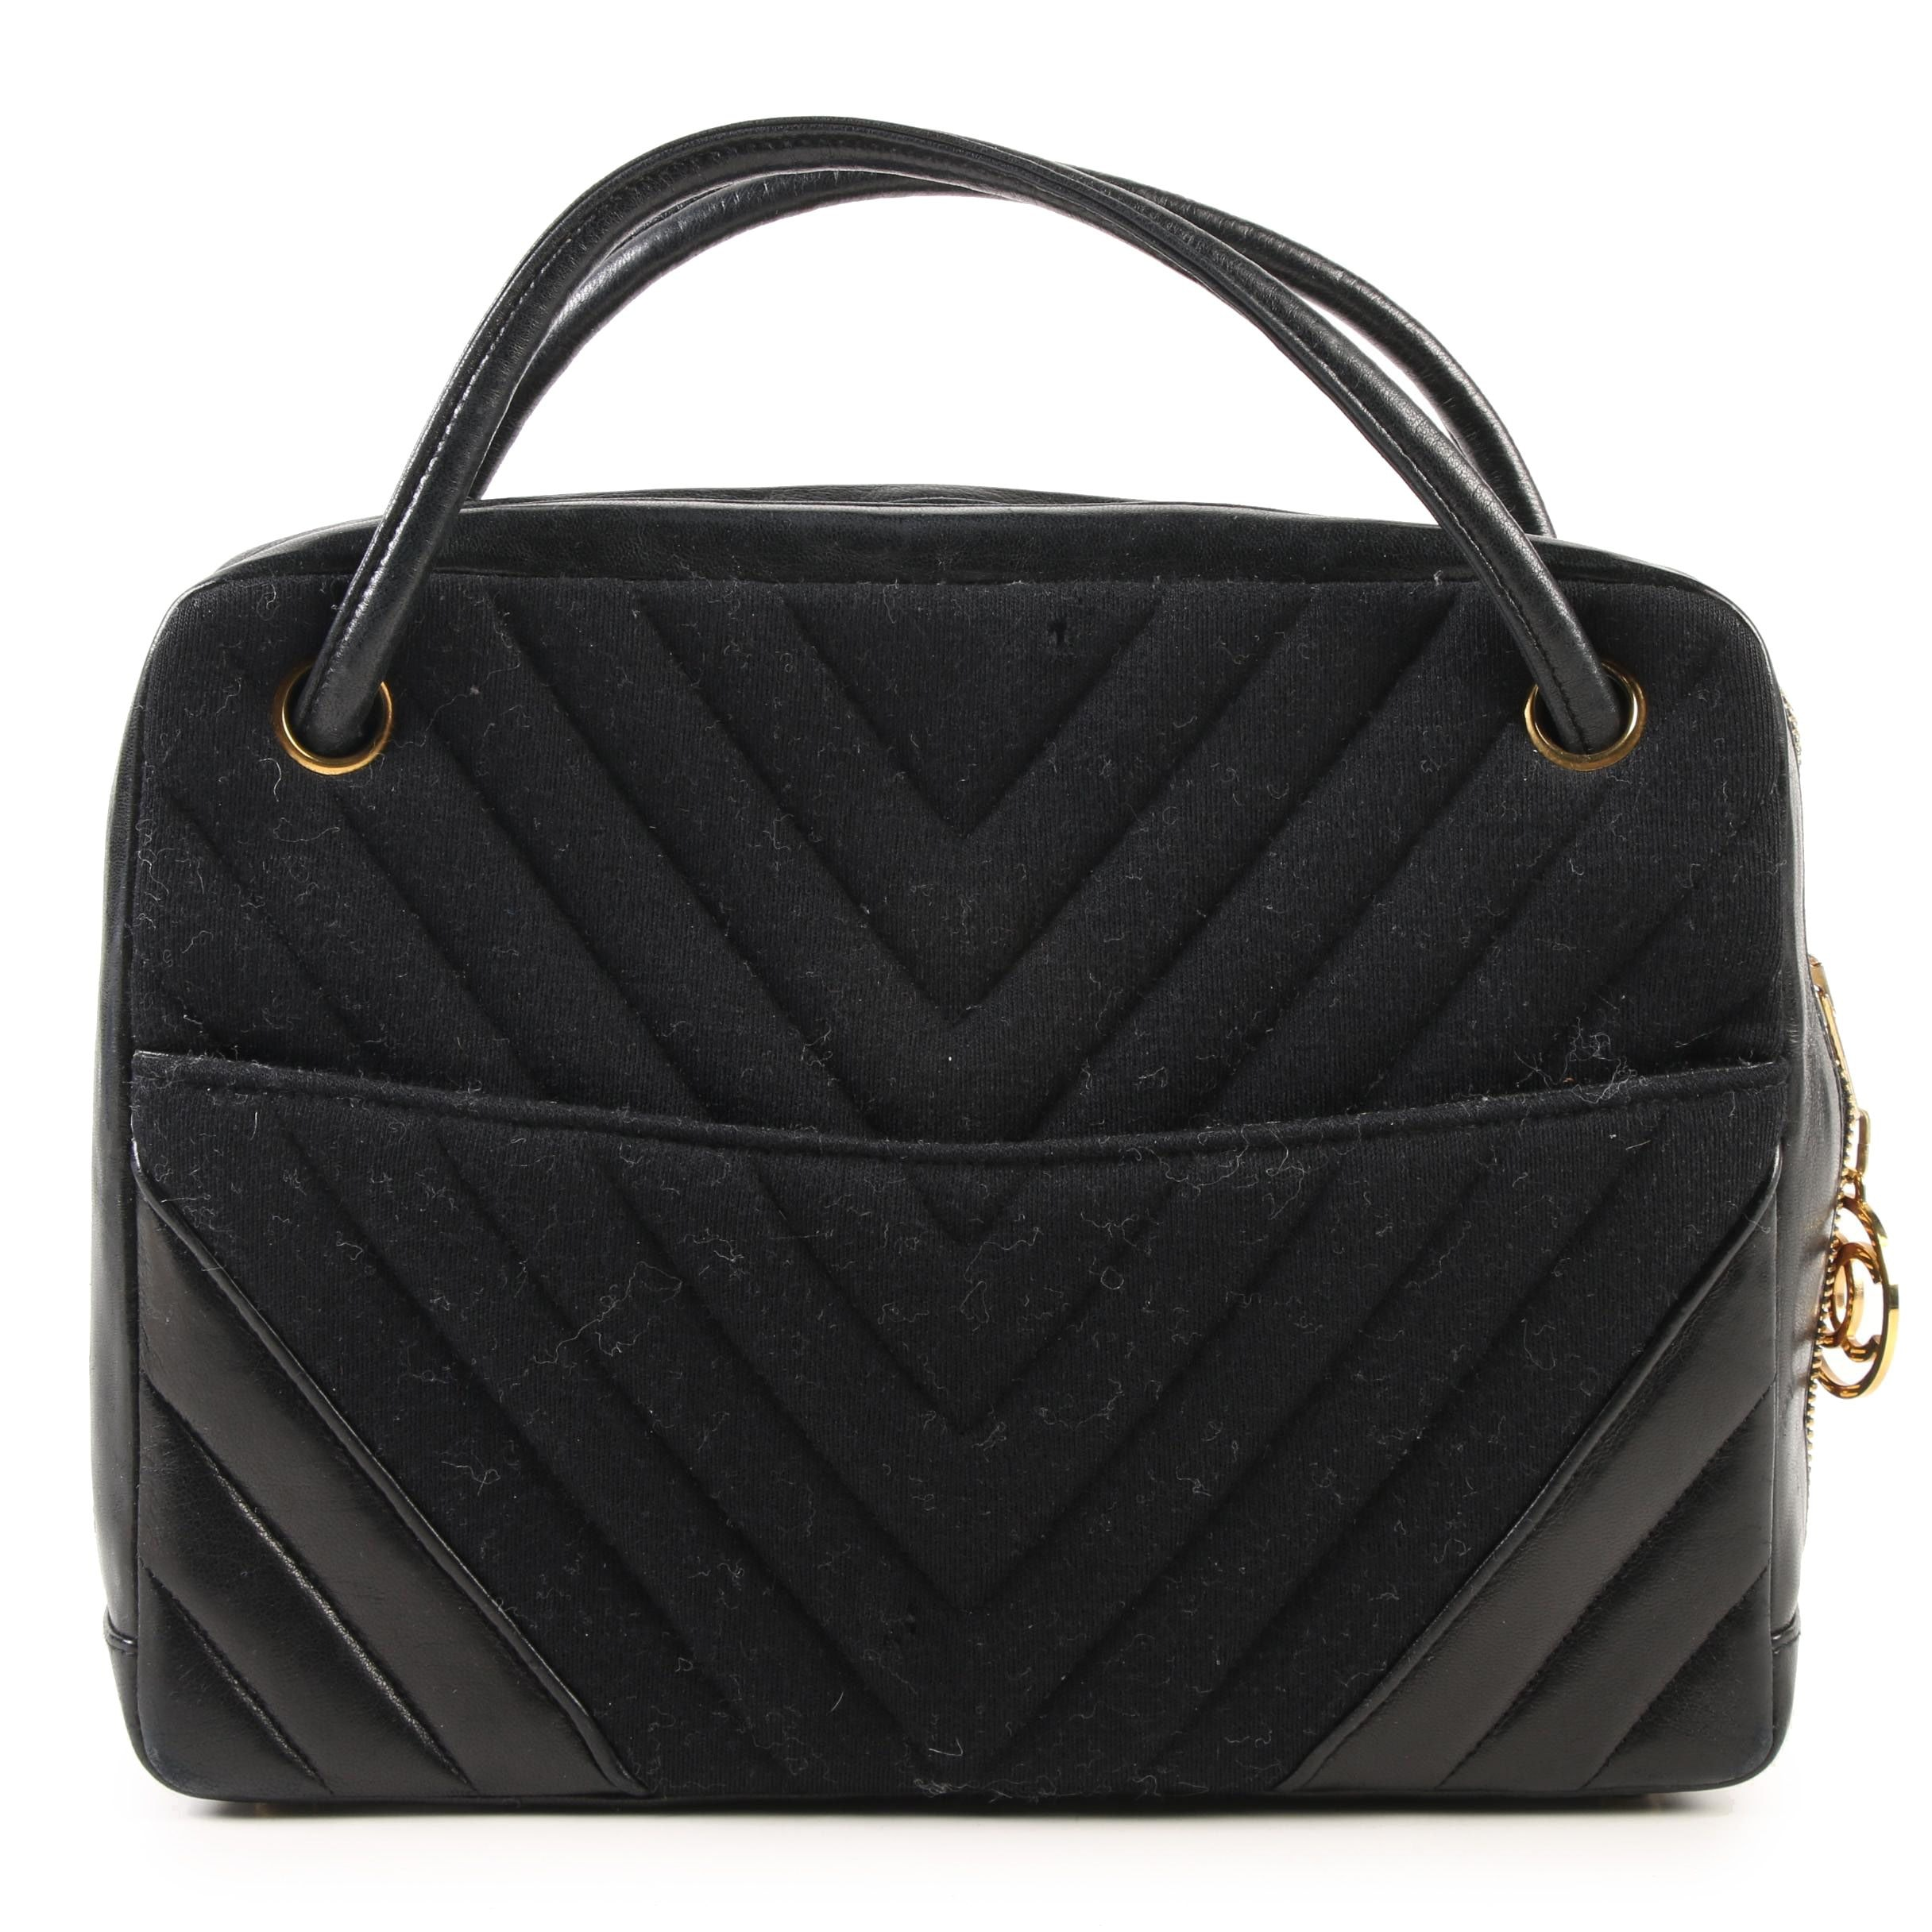 Chanel Handbag in Black Chevron Quilted Jersey and Leather, France, 1989-1991